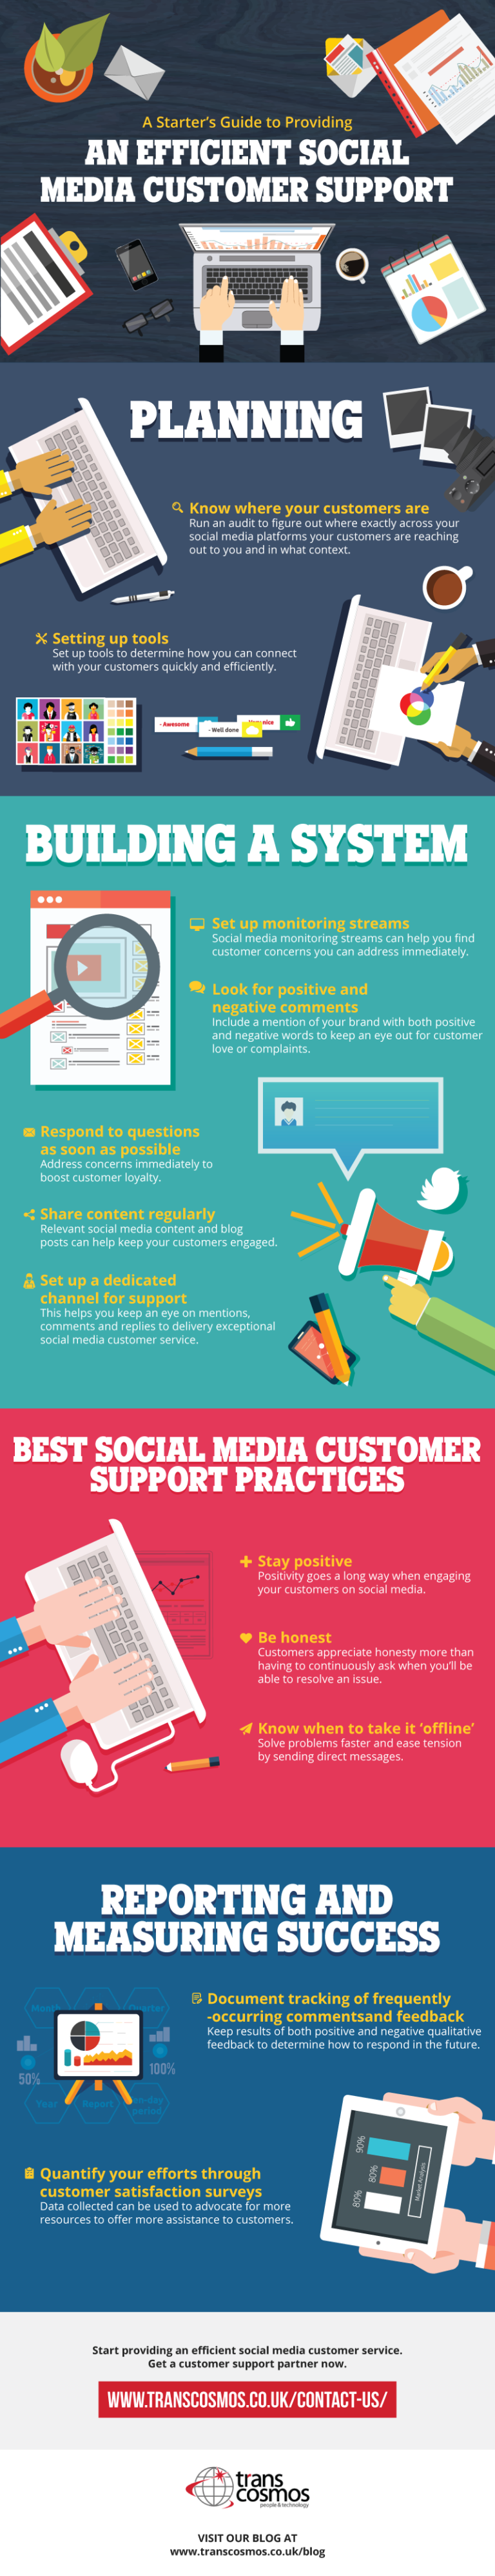 Infographic outlines essential social customer care best practices